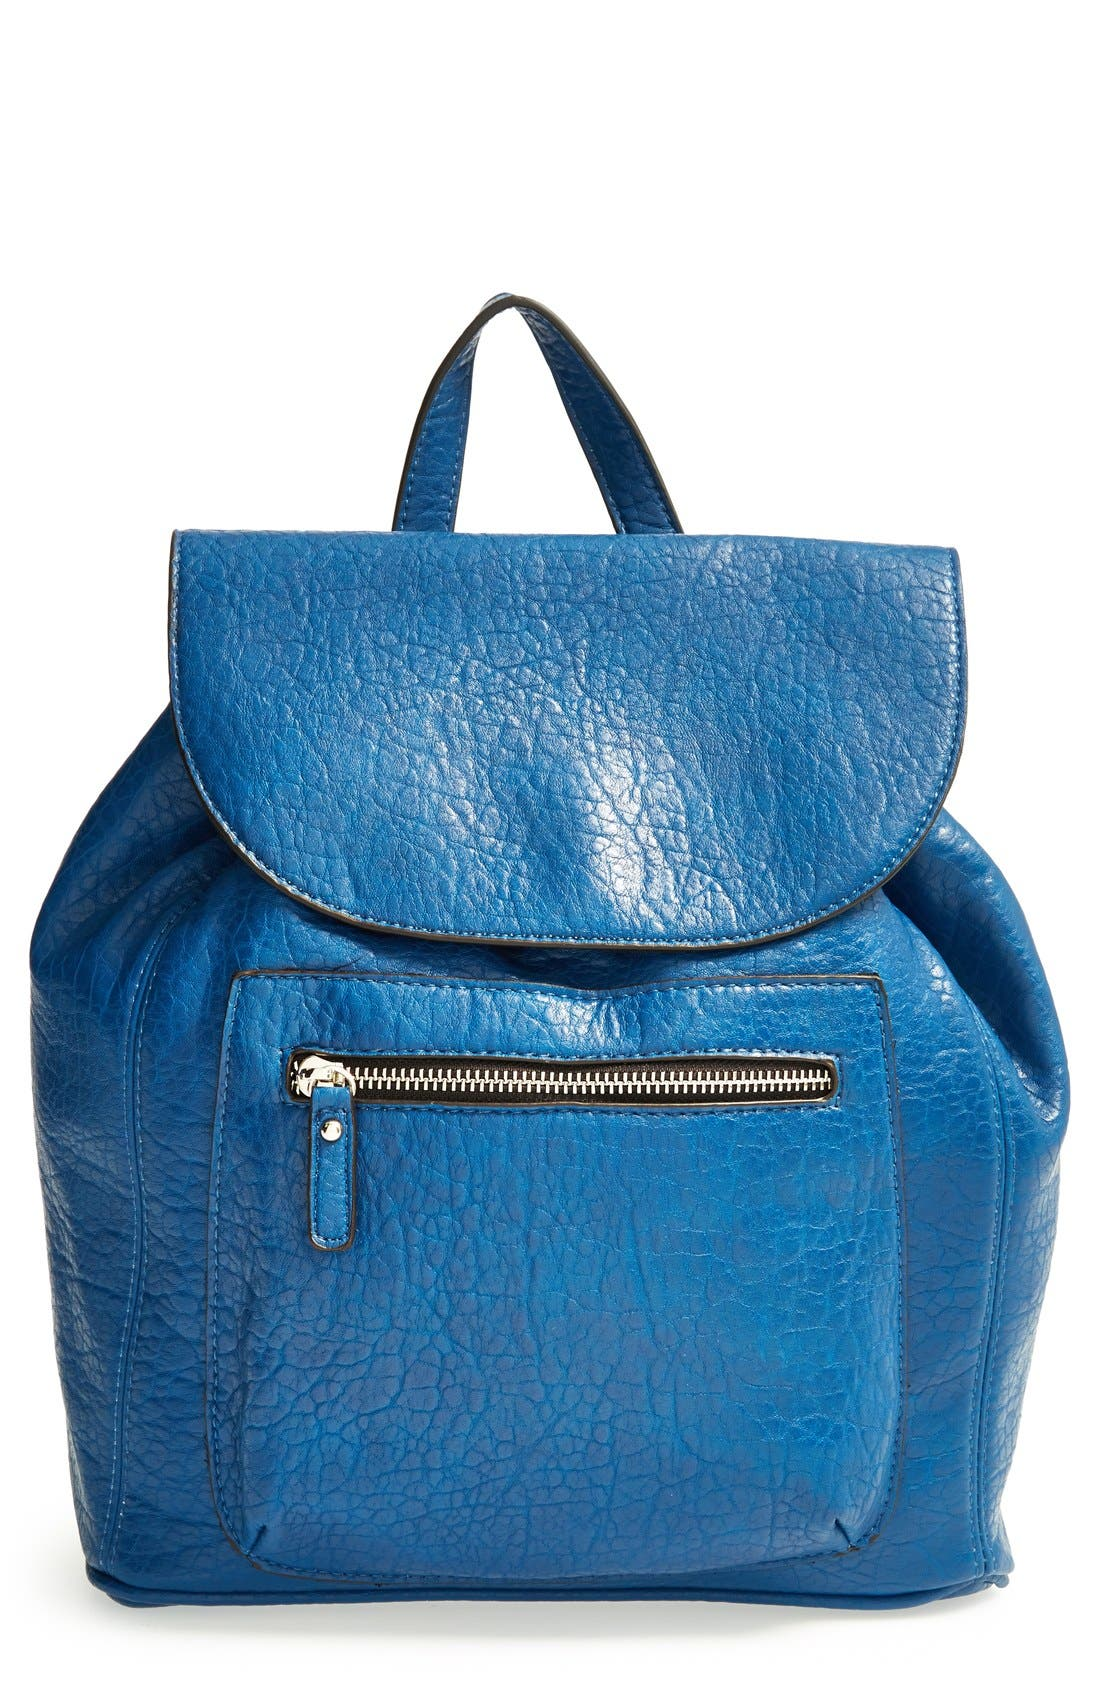 Alternate Image 1 Selected - kensie 'Perfectly Pebbled' Faux Leather Backpack